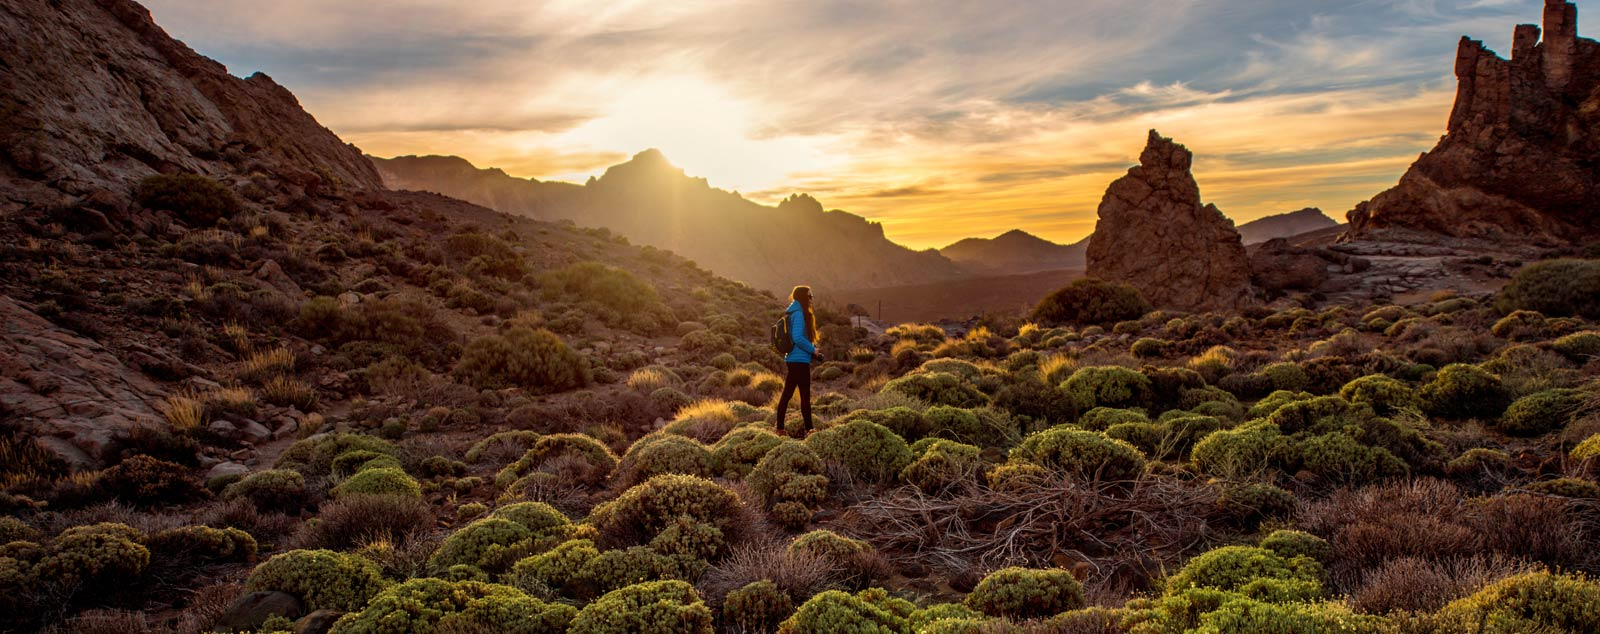 A woman walking through shrubland and rocky terrain under a yellow sunset